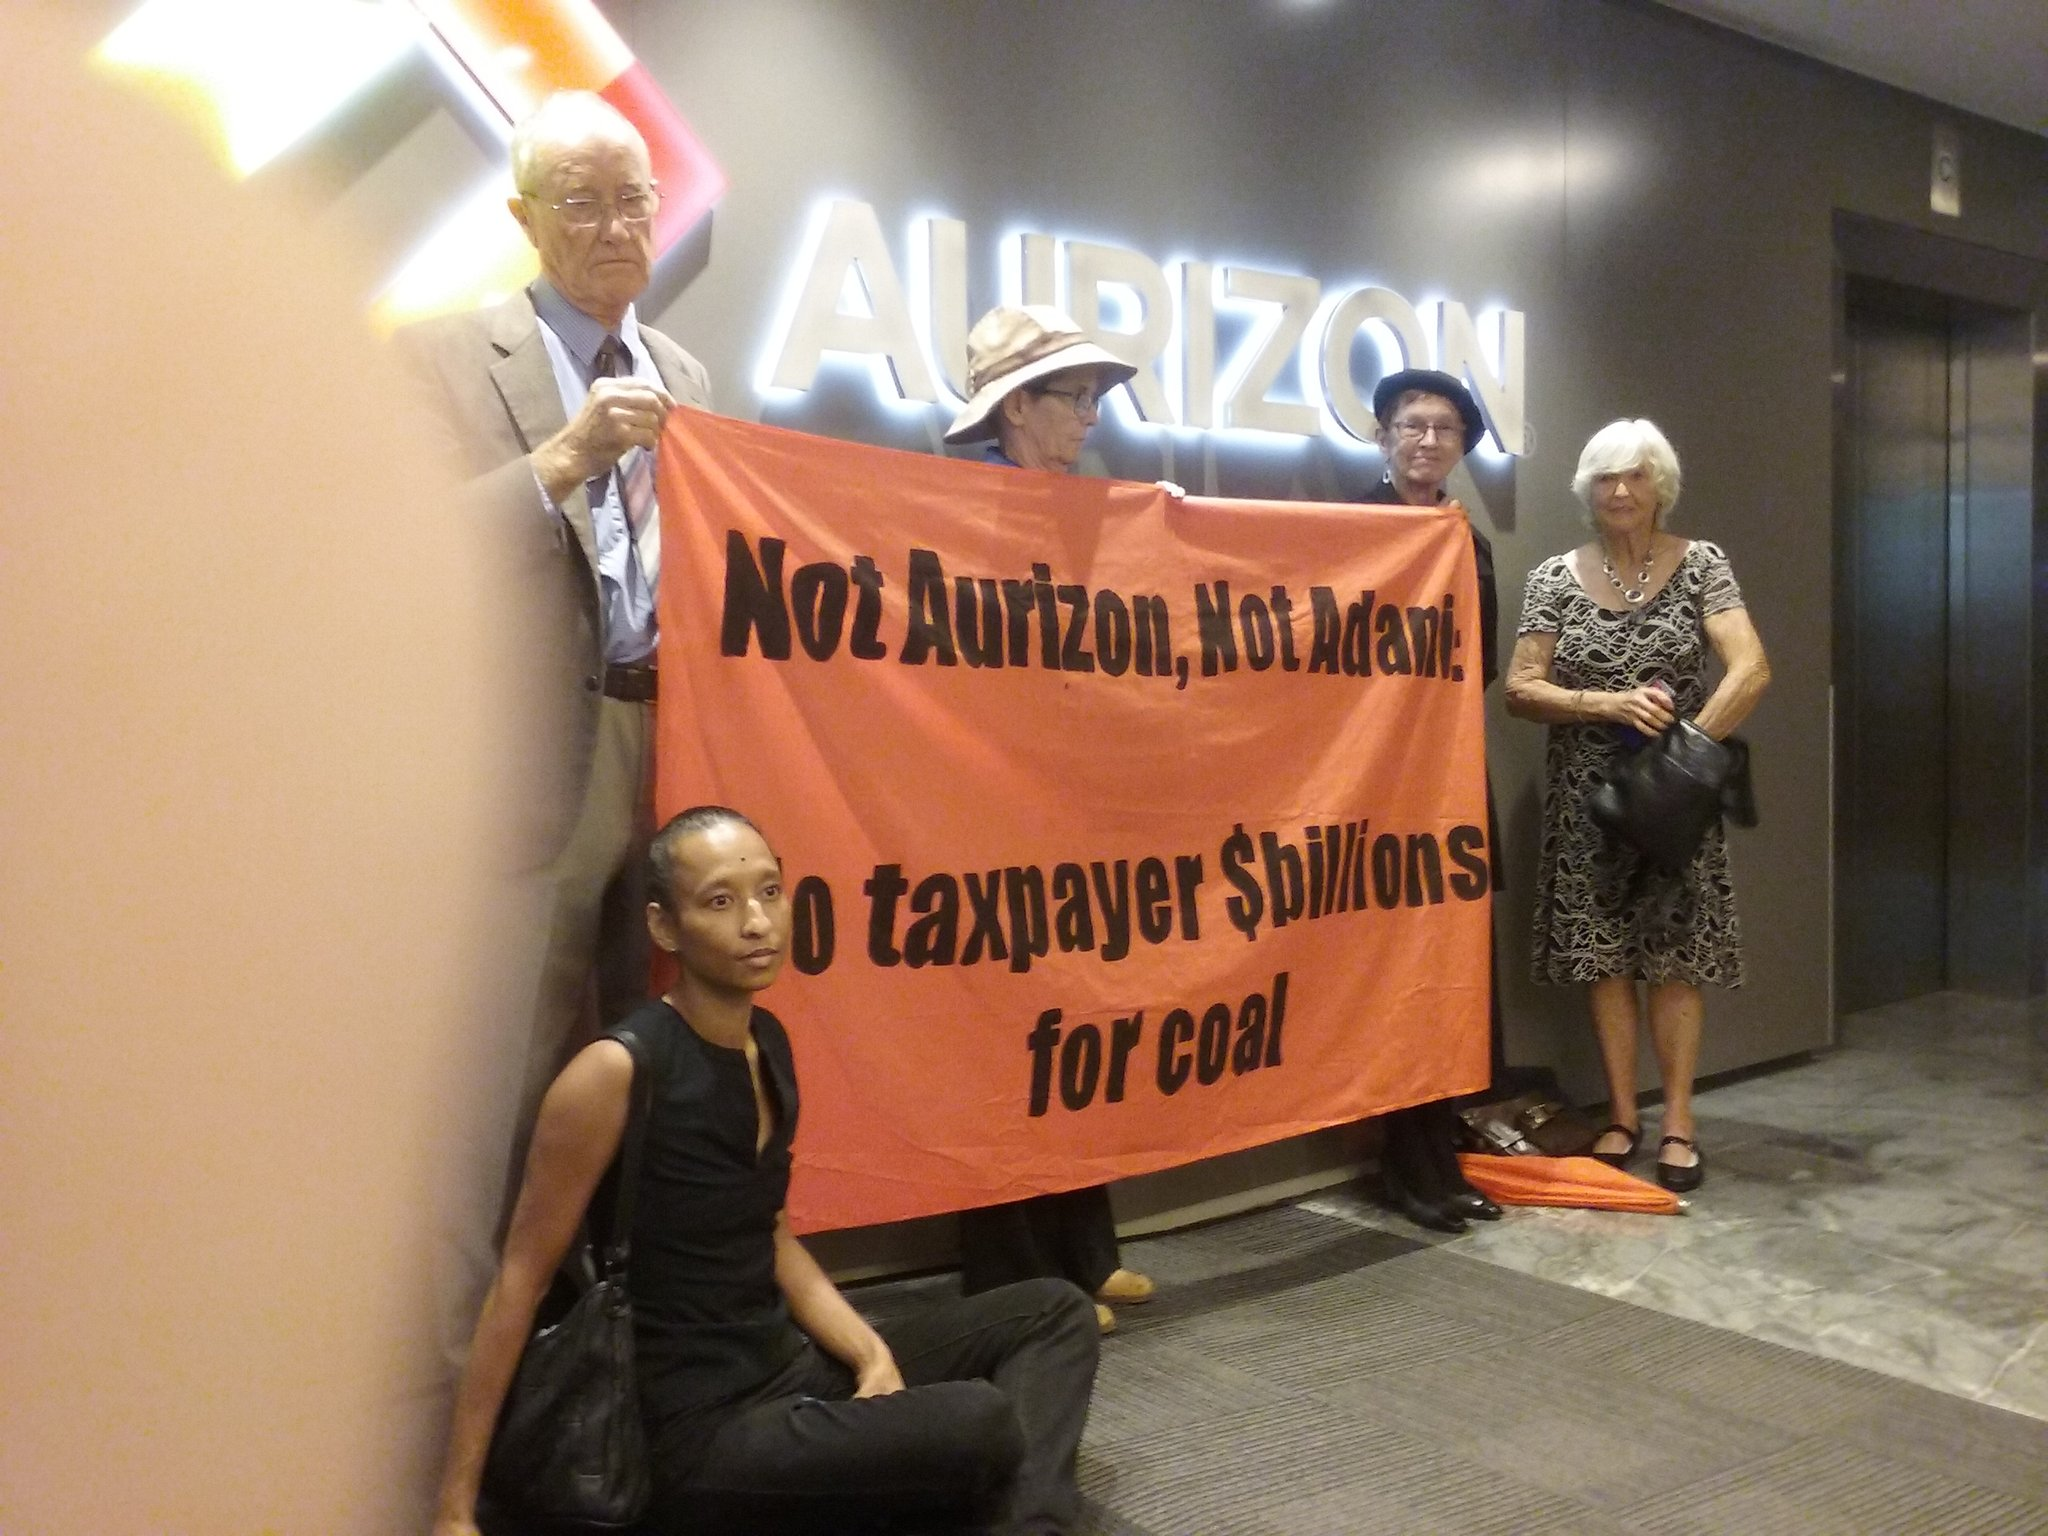 Aurizon has called police to remove protesters calling for taxpayer money not to go to Adani/Aurizon rail #nohandoutsforcoal #stopadani https://t.co/iE3dFY9gL1